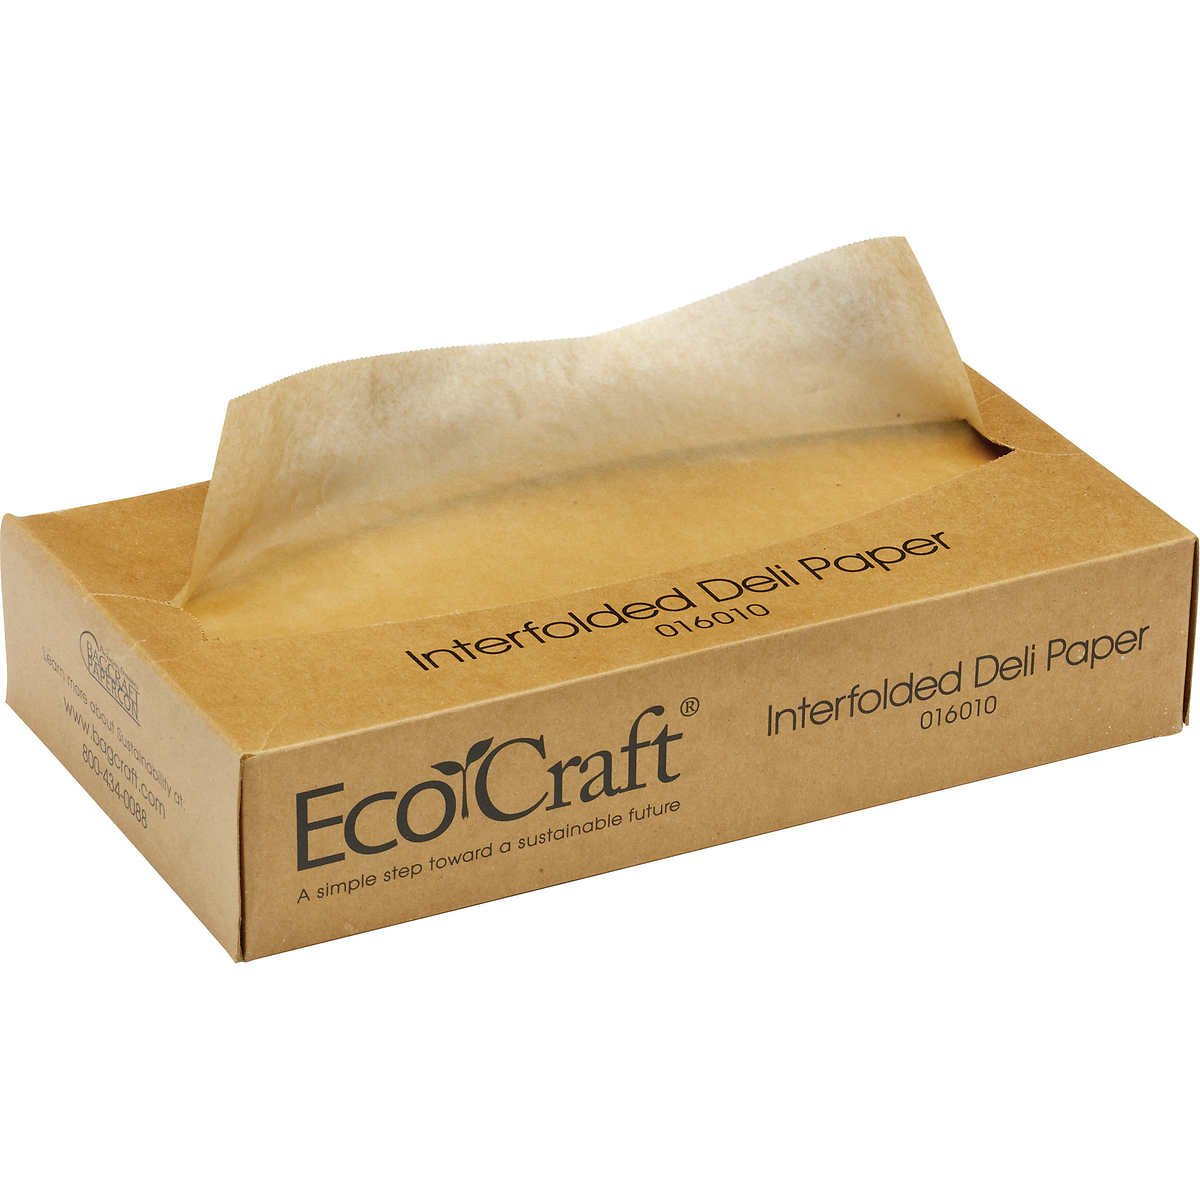 Bagcraft Papercon 016010 EcoCraft Interfolded Dry Wax Deli Paper, 10-3/4'' Length x 10'' Width, NK10 Natural (12 Packs of 500)